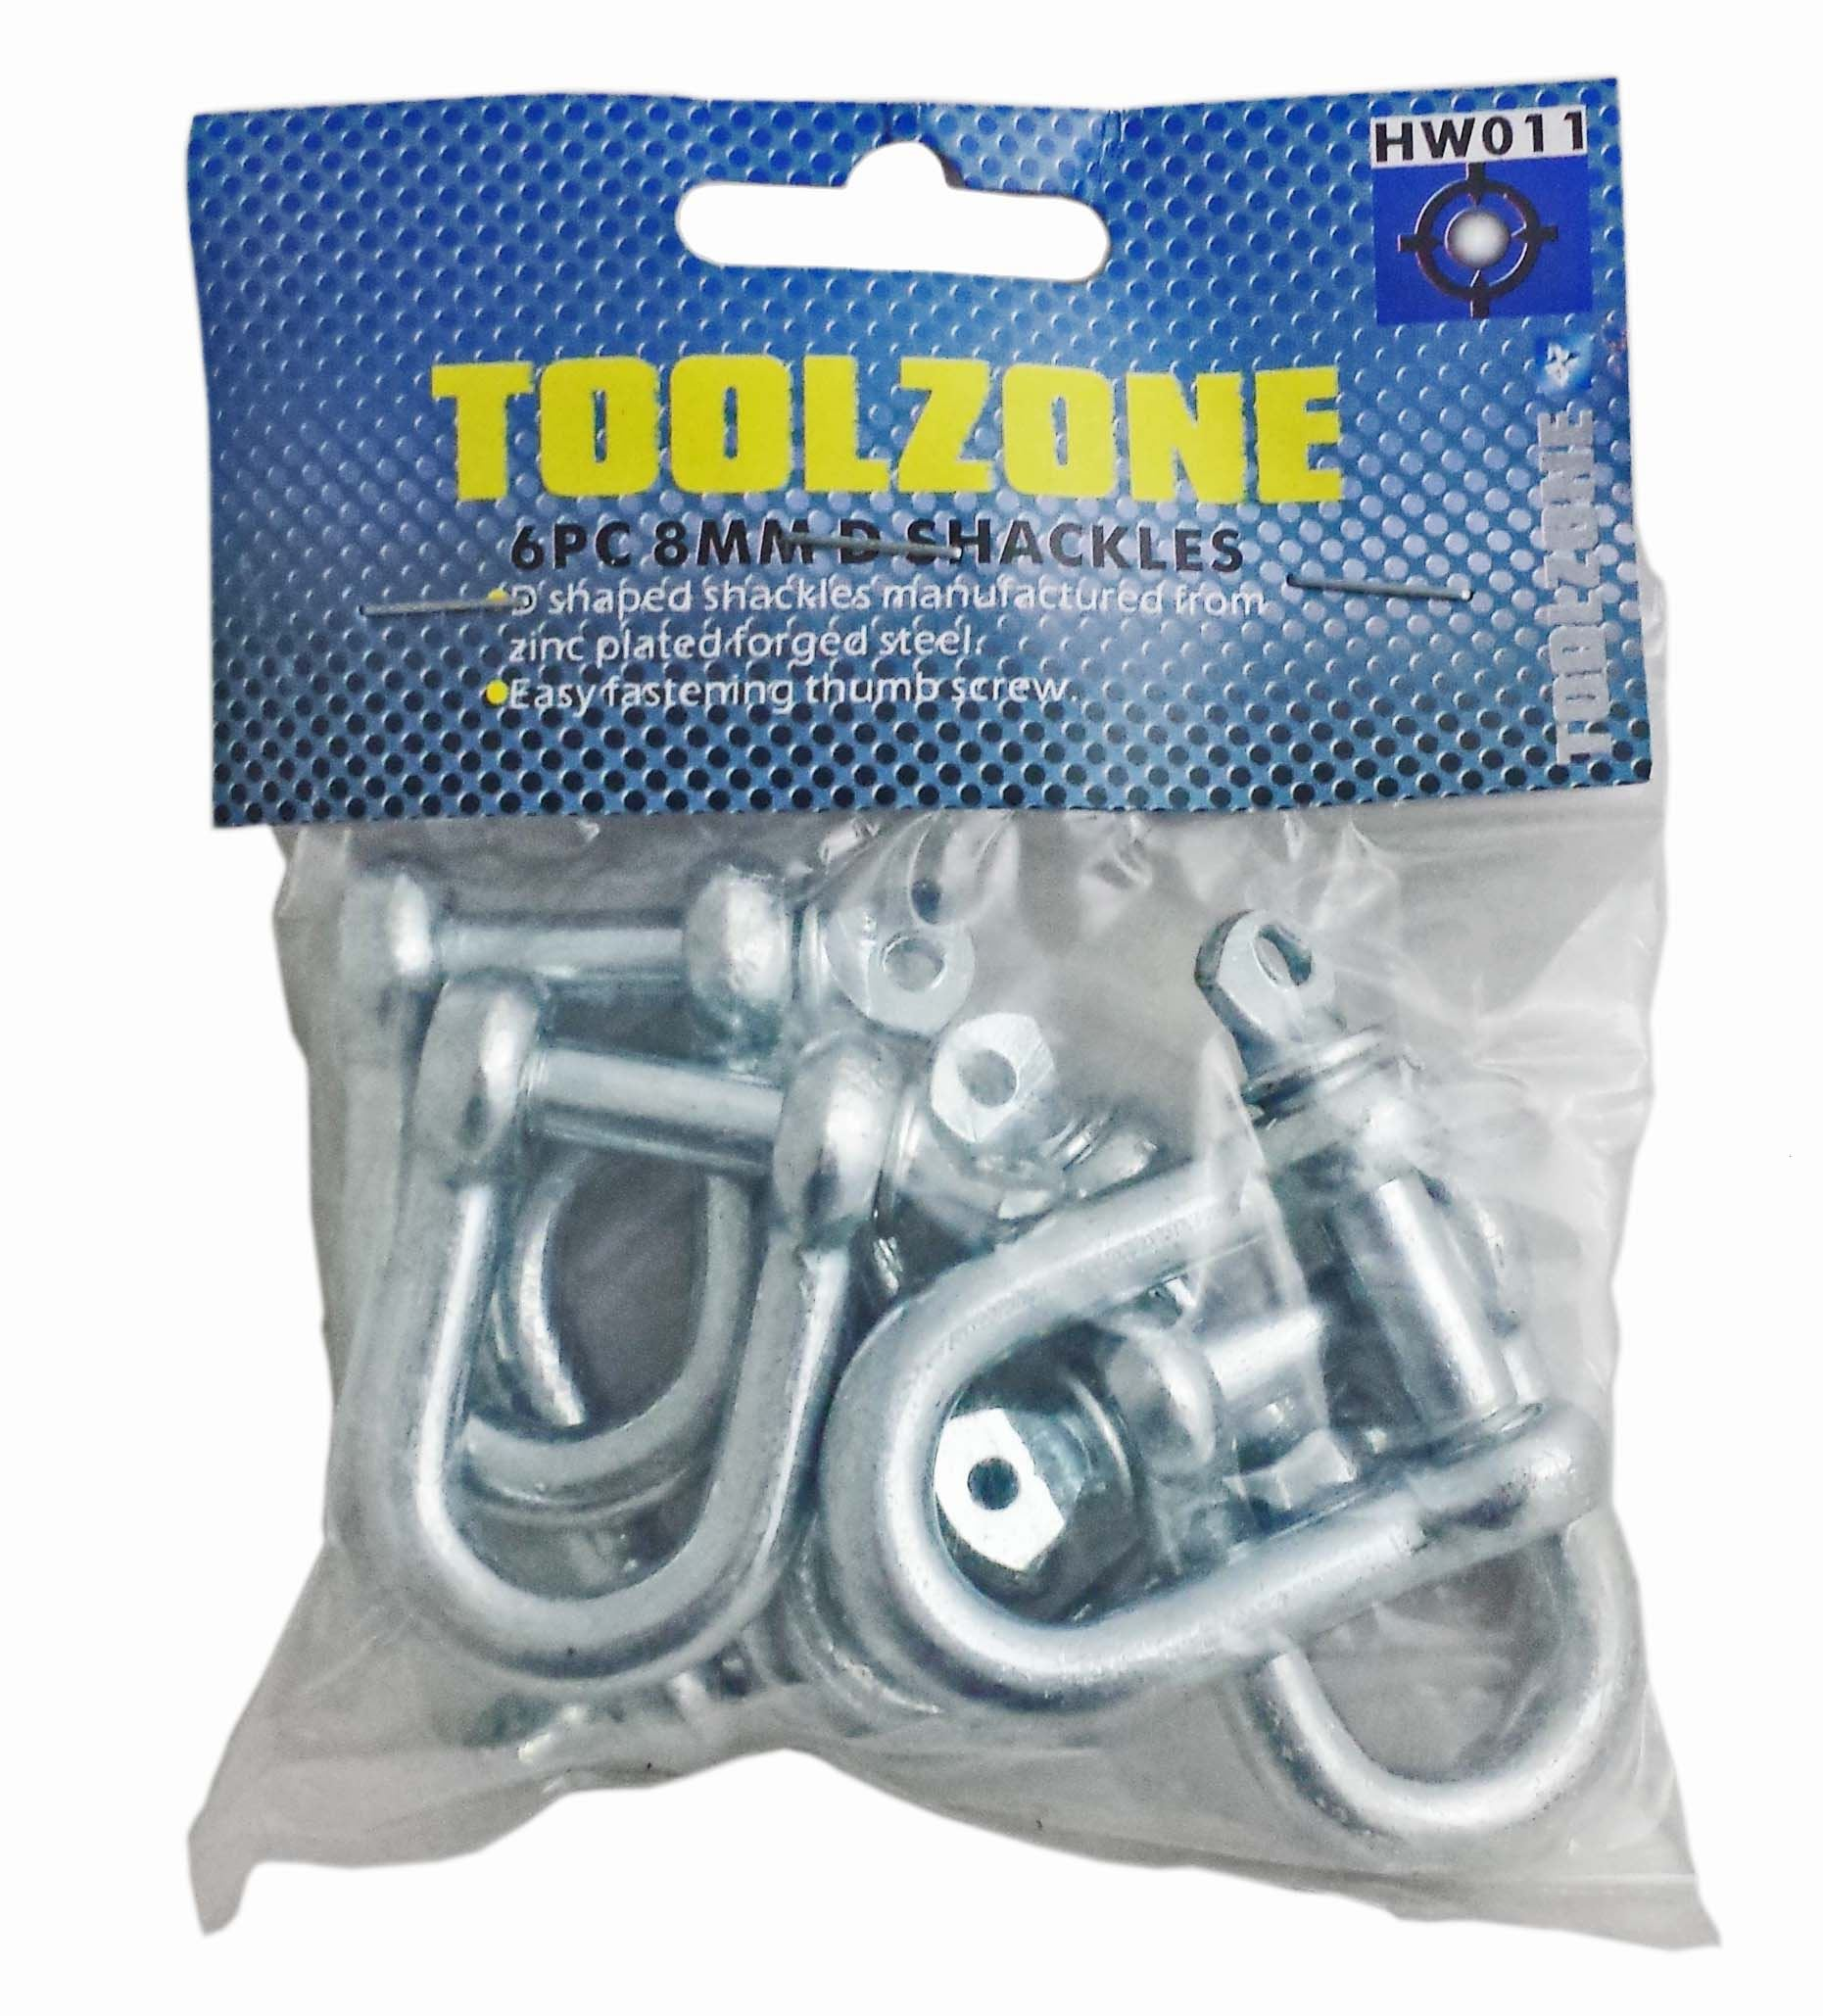 Toolzone 6Pc 8Mm D Shackles